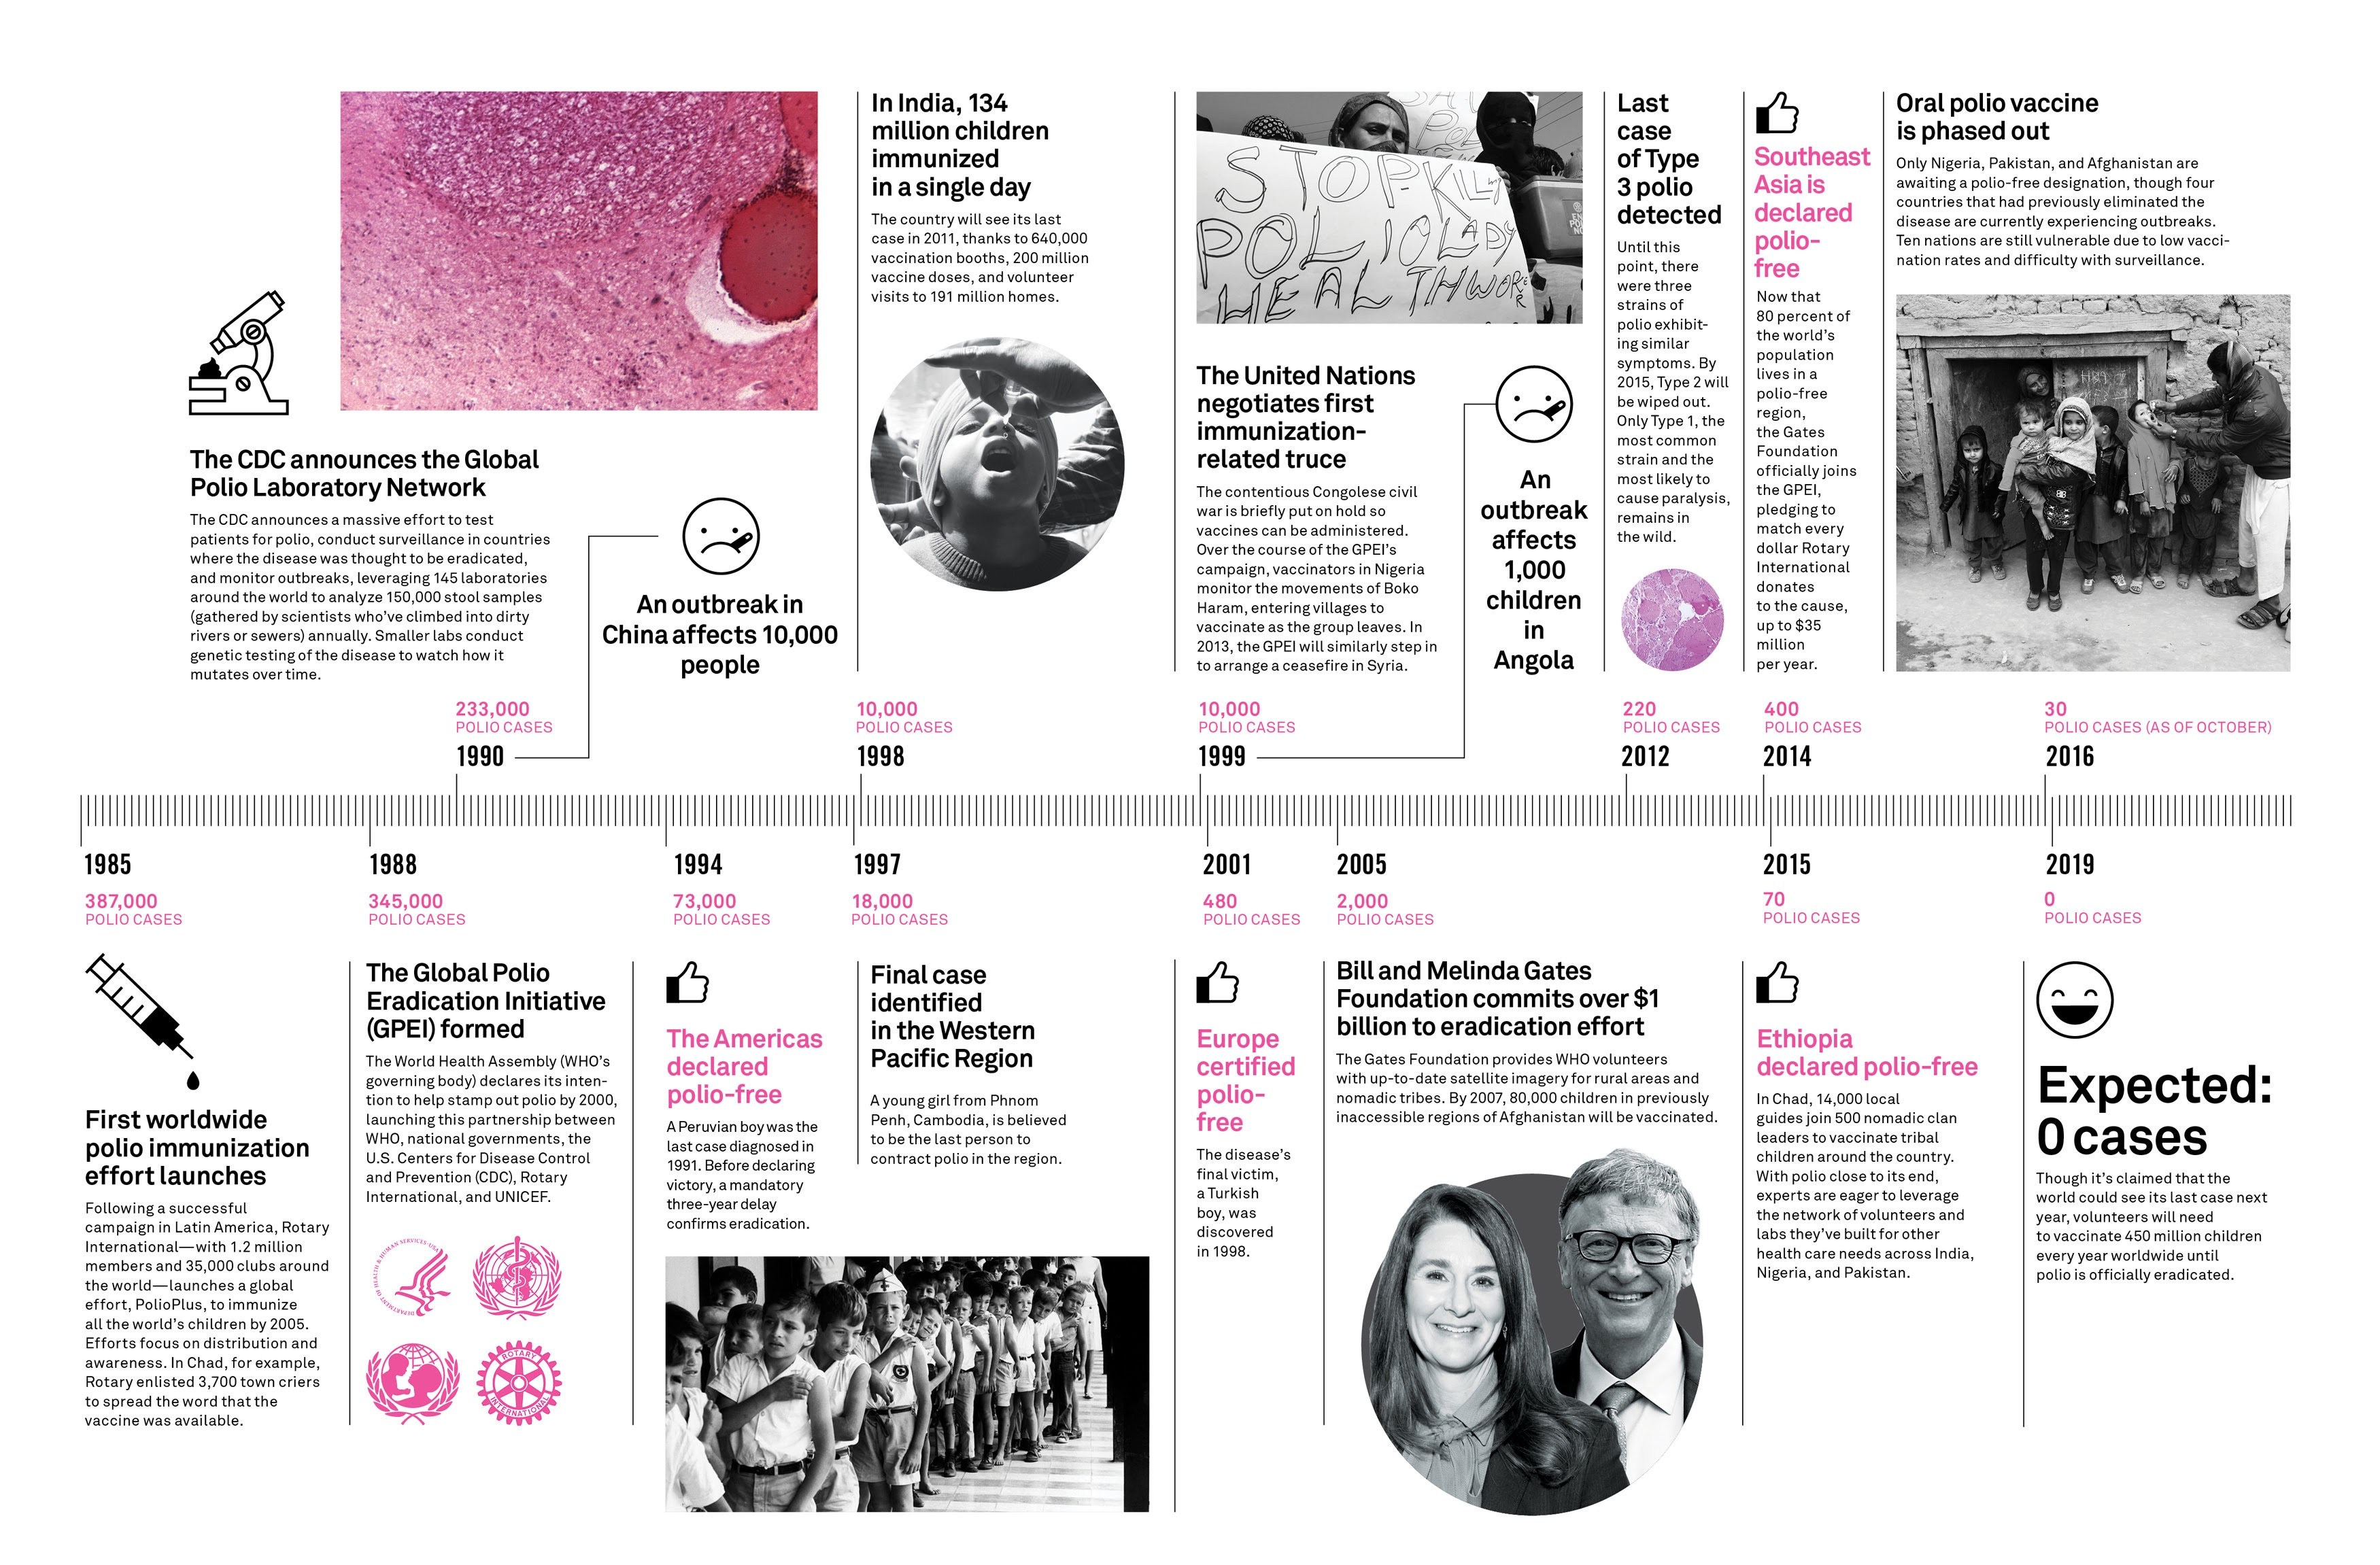 Tracking The Decades-Long Fight To Eradicate Polio #infographic